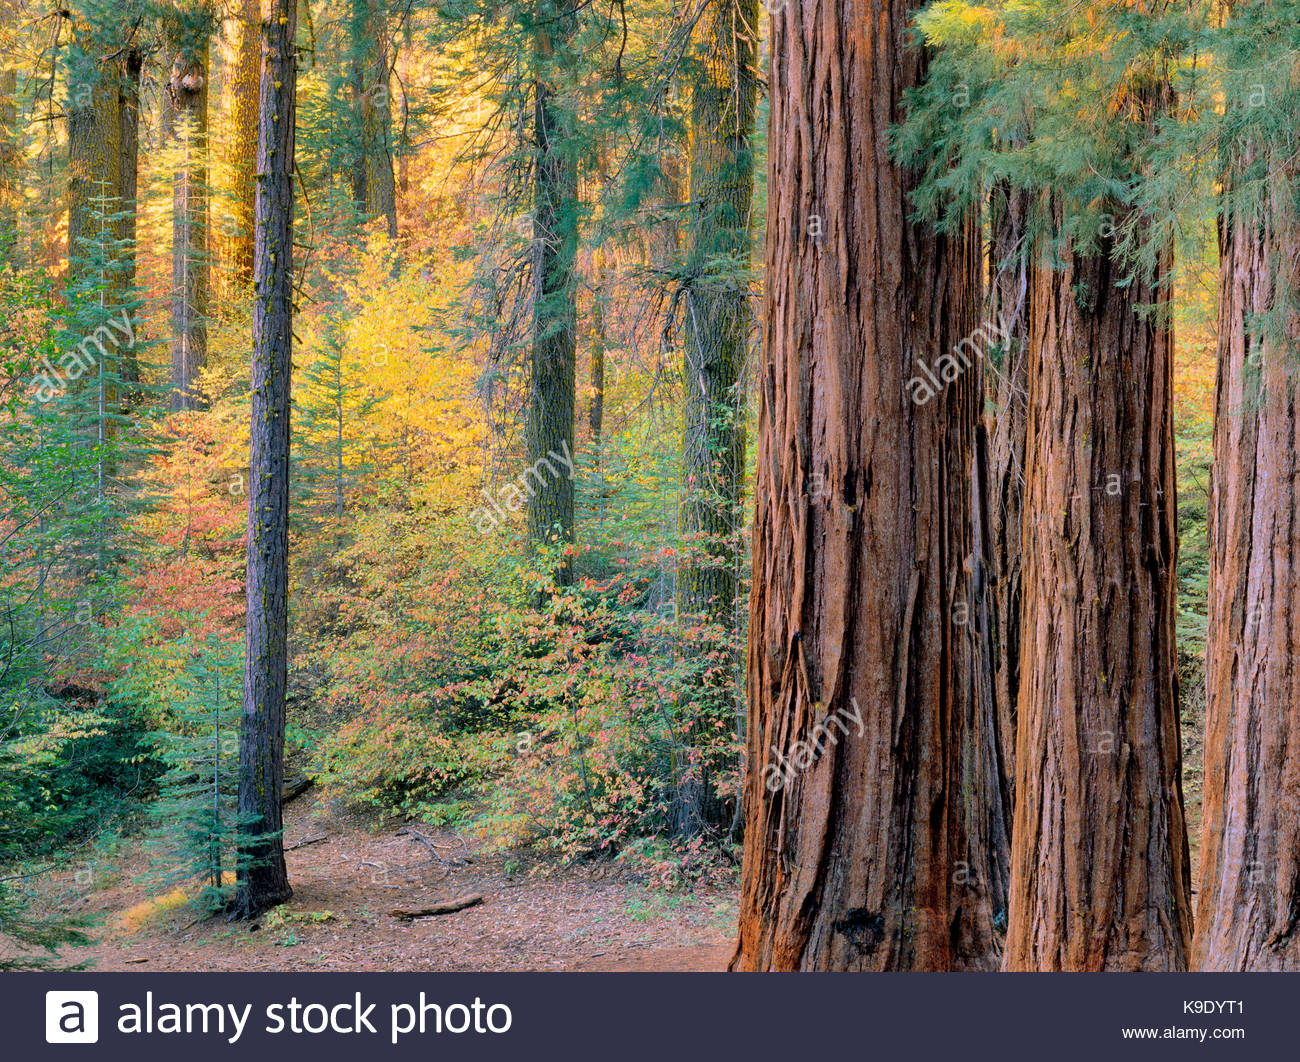 Giant Sequoias in Fall in the Merced Grove,Yosemite National Park, California - Stock Image